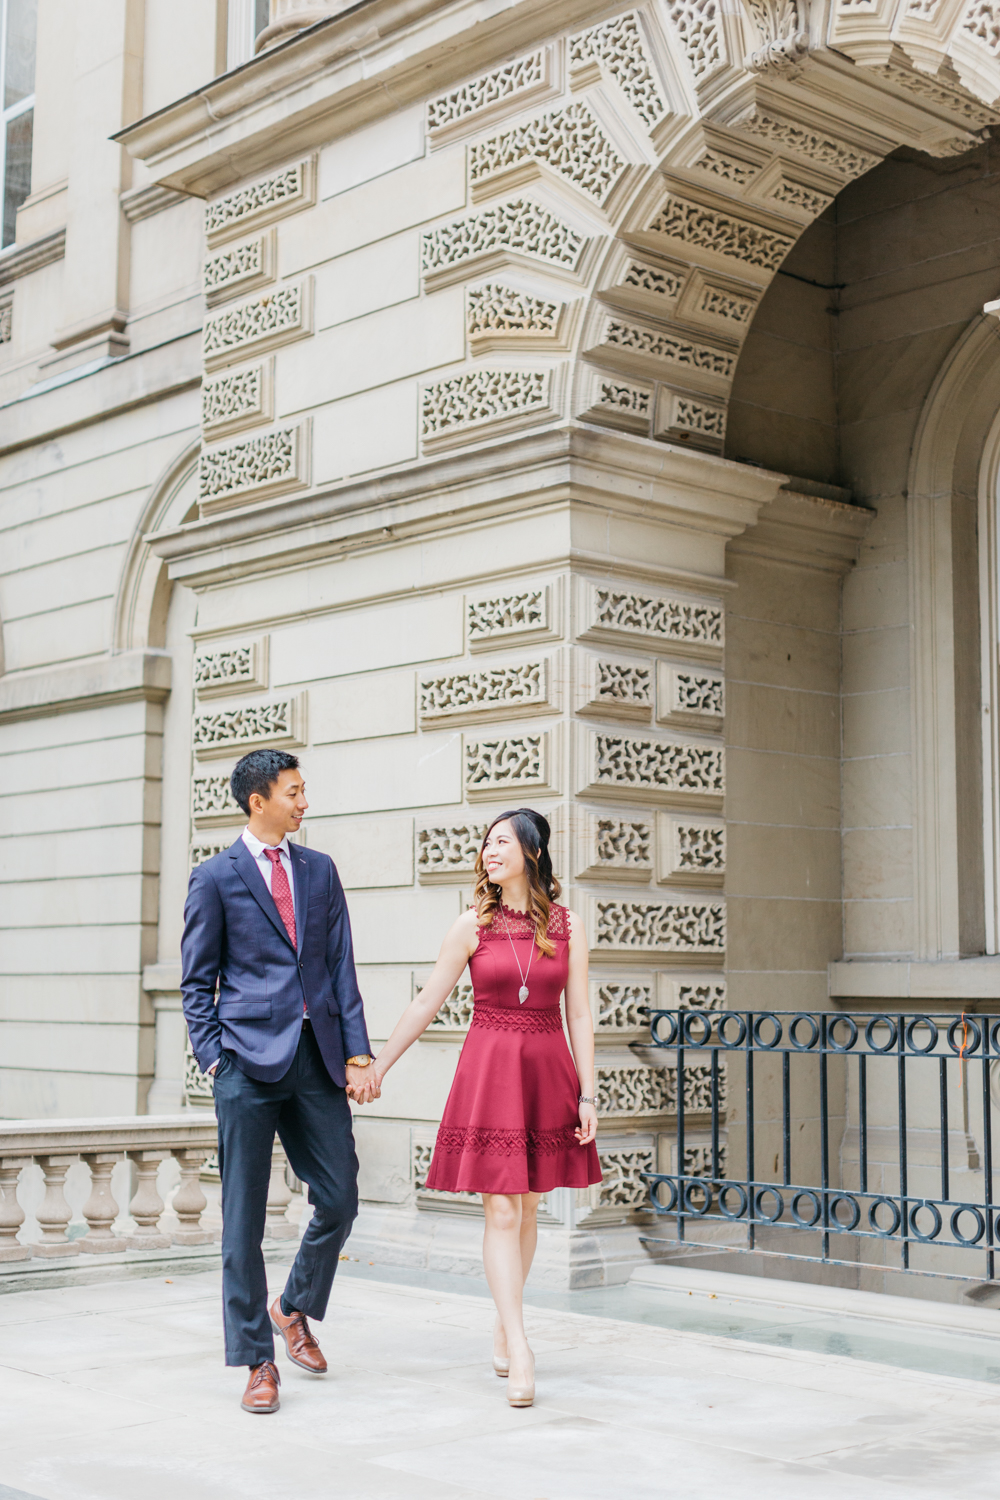 couple walking in formal outfits at osgoode hall